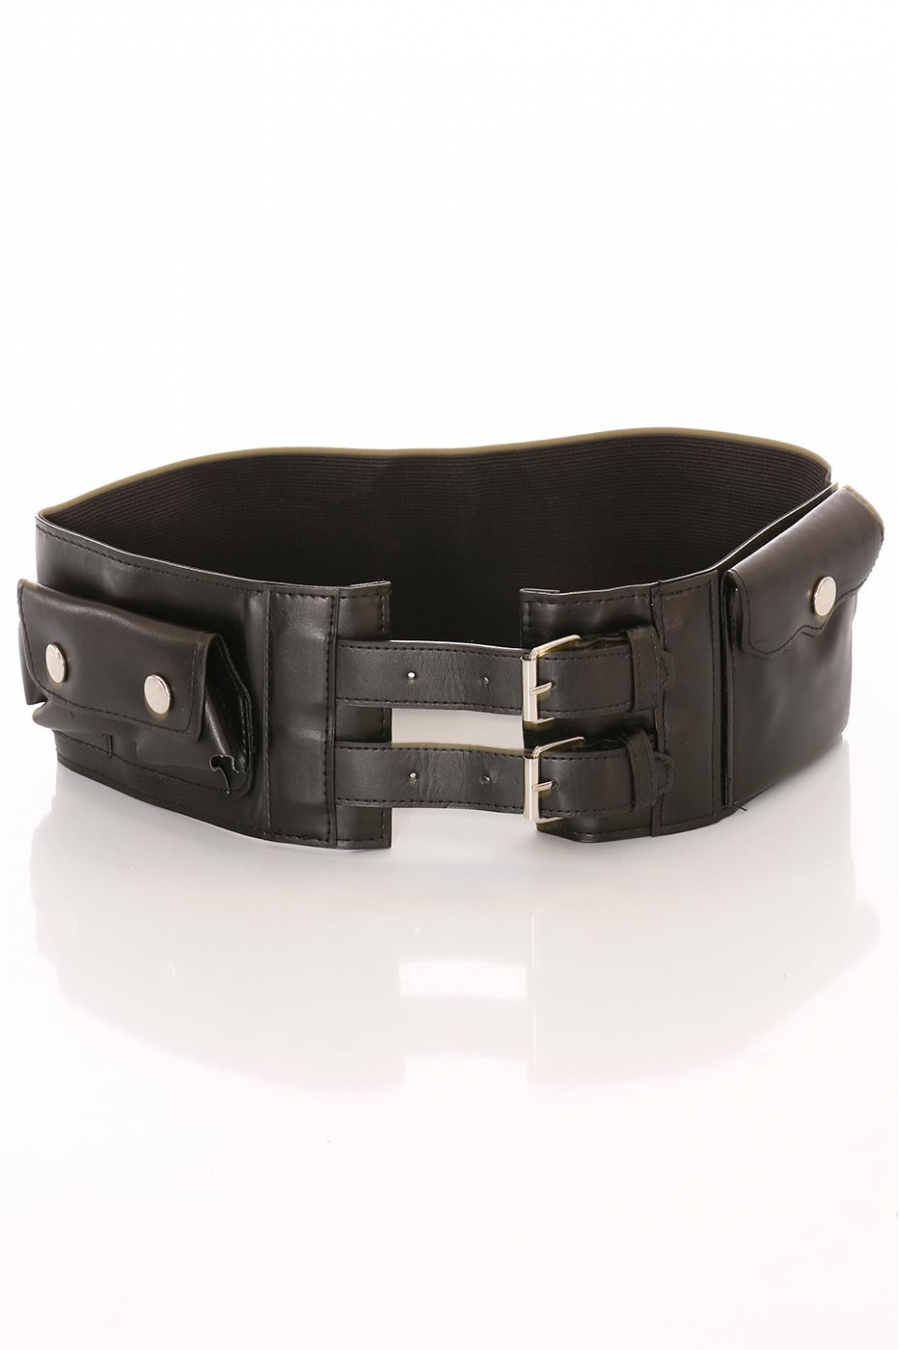 Wide black belt, double buckle and accessory pockets. D7235